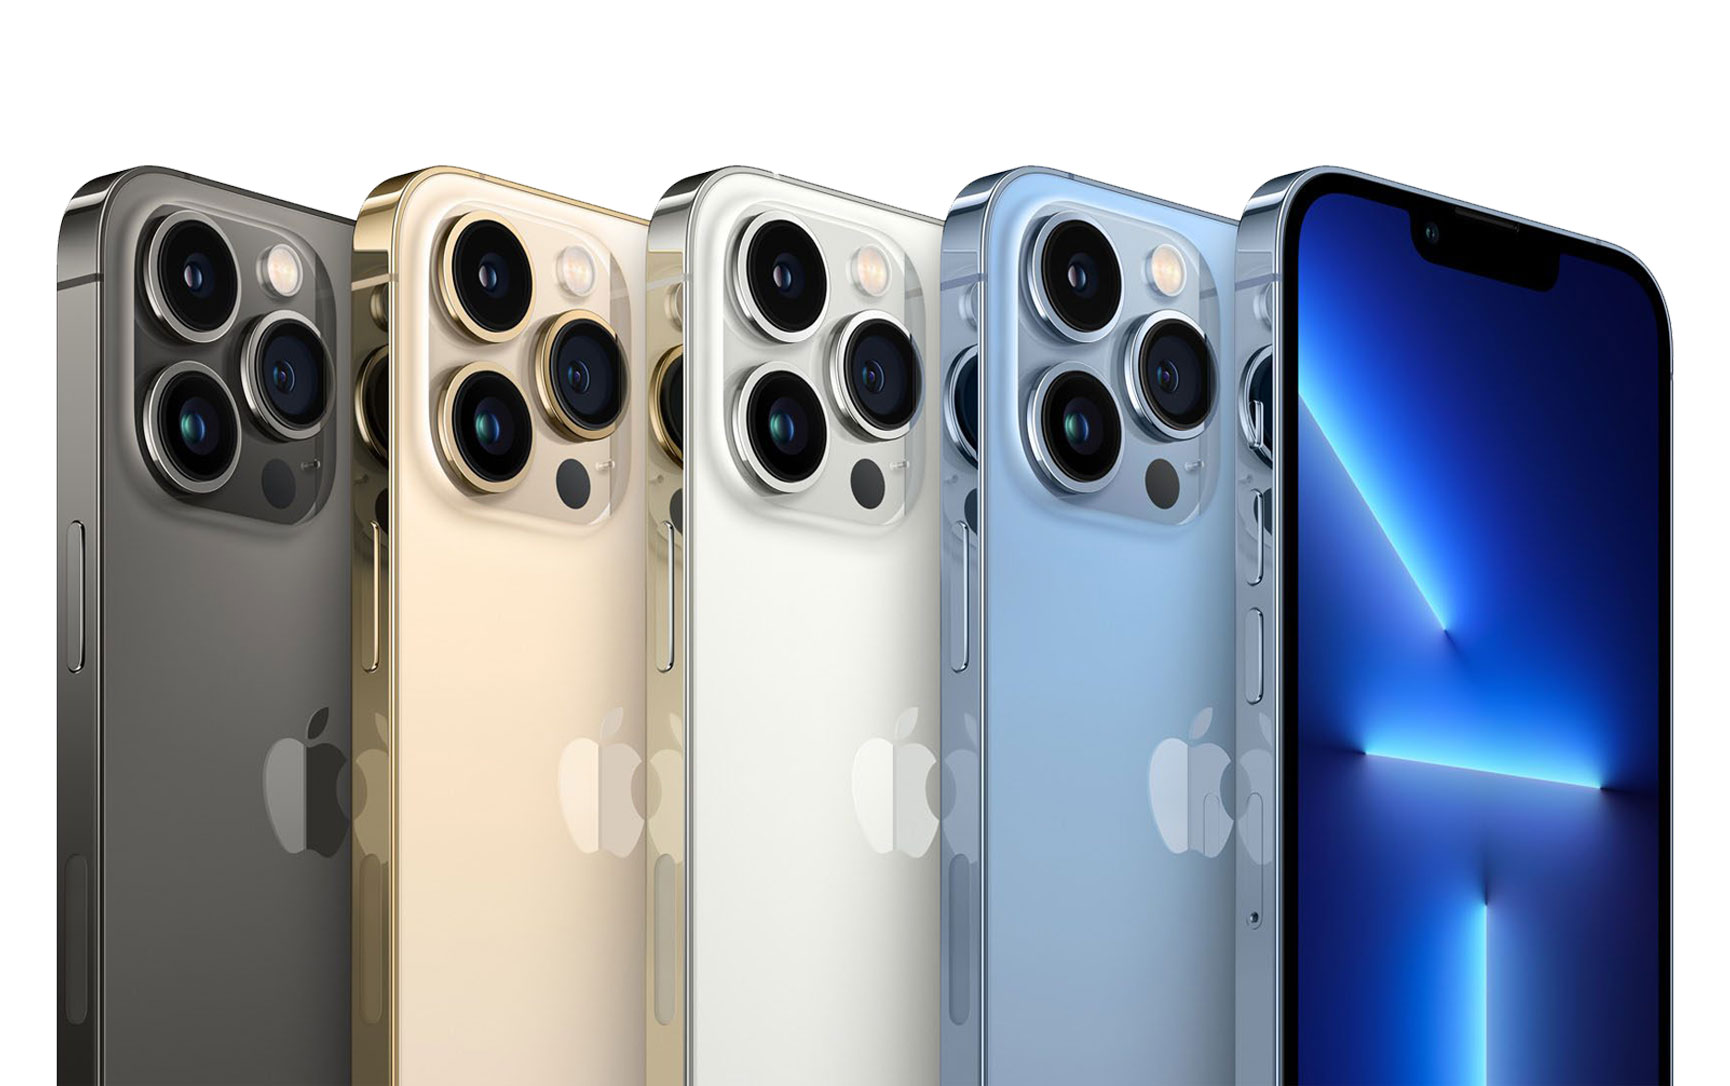 Kuo: iPhone 13 pre-orders stronger than iPhone 12, shortages of iPhone 13 Pro to persist until November